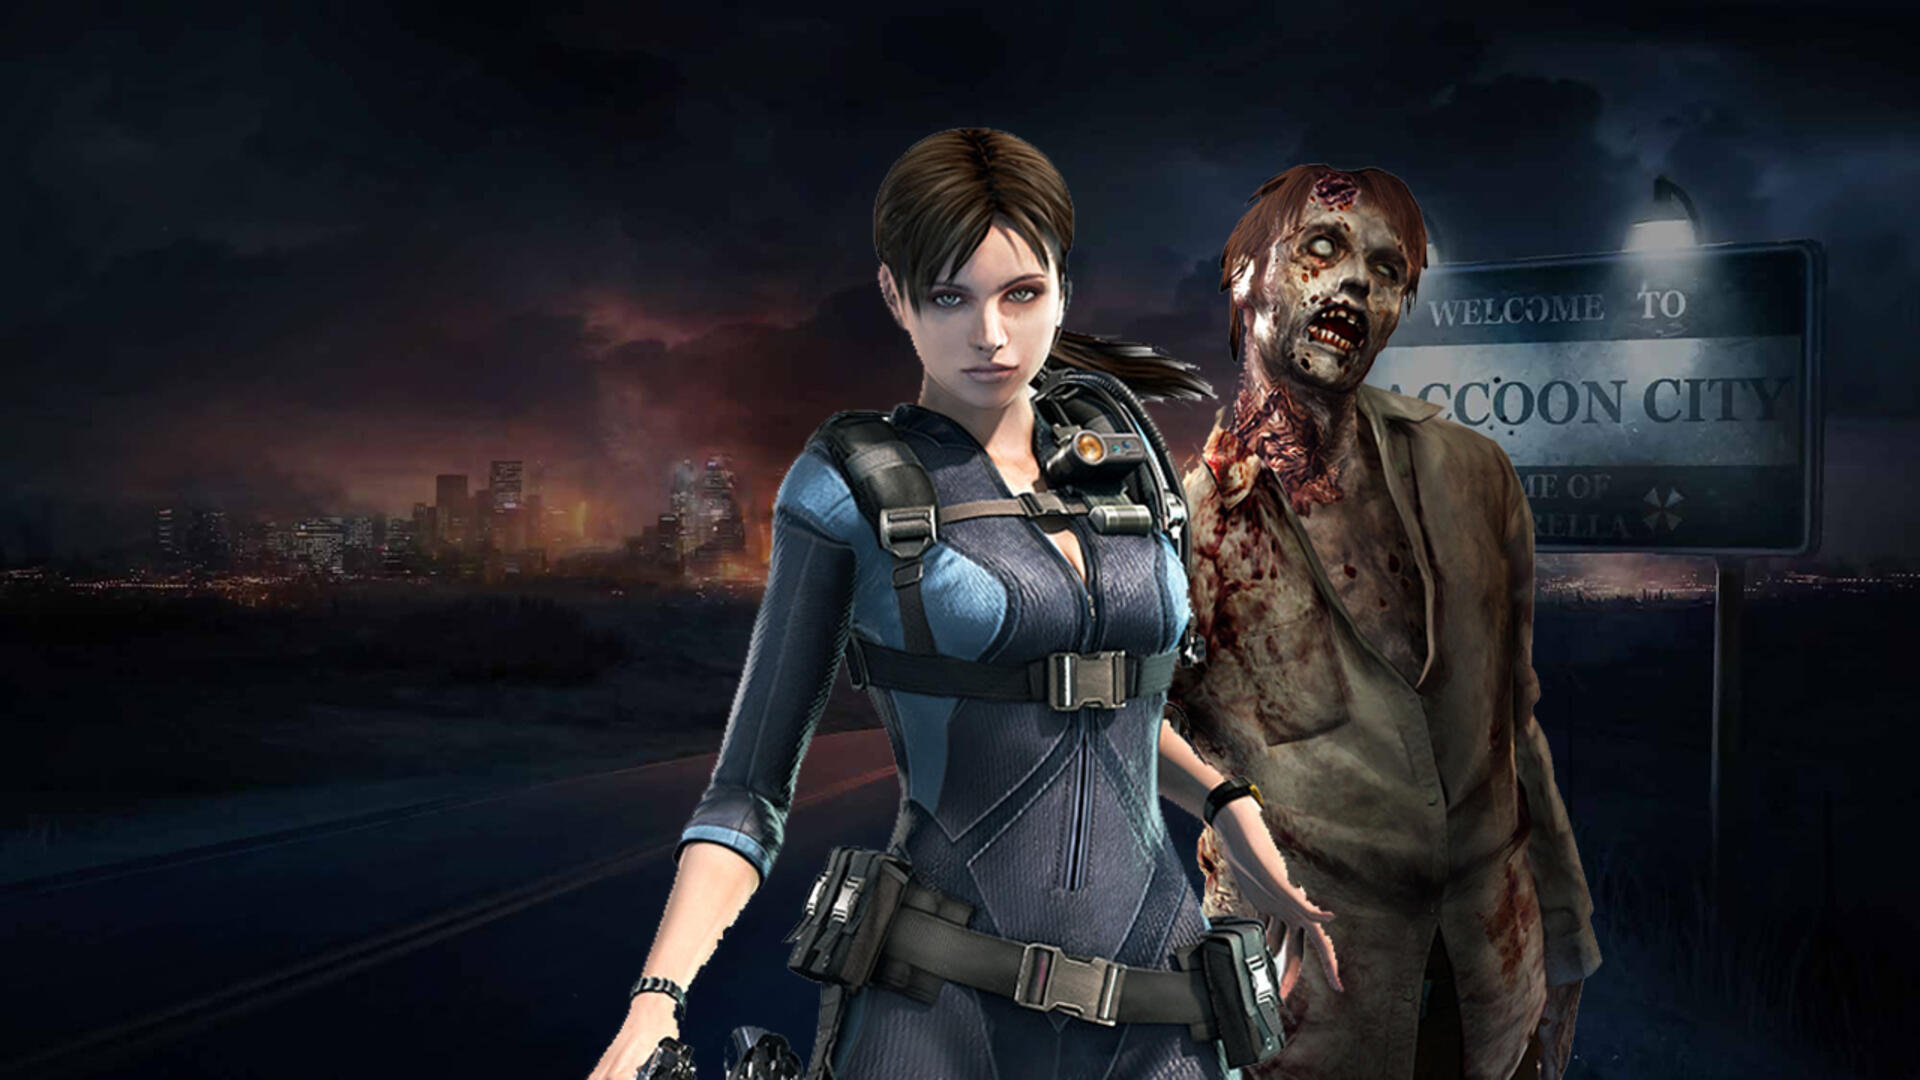 The Best Resident Evil Games Ranked From Worst to Best | USgamer